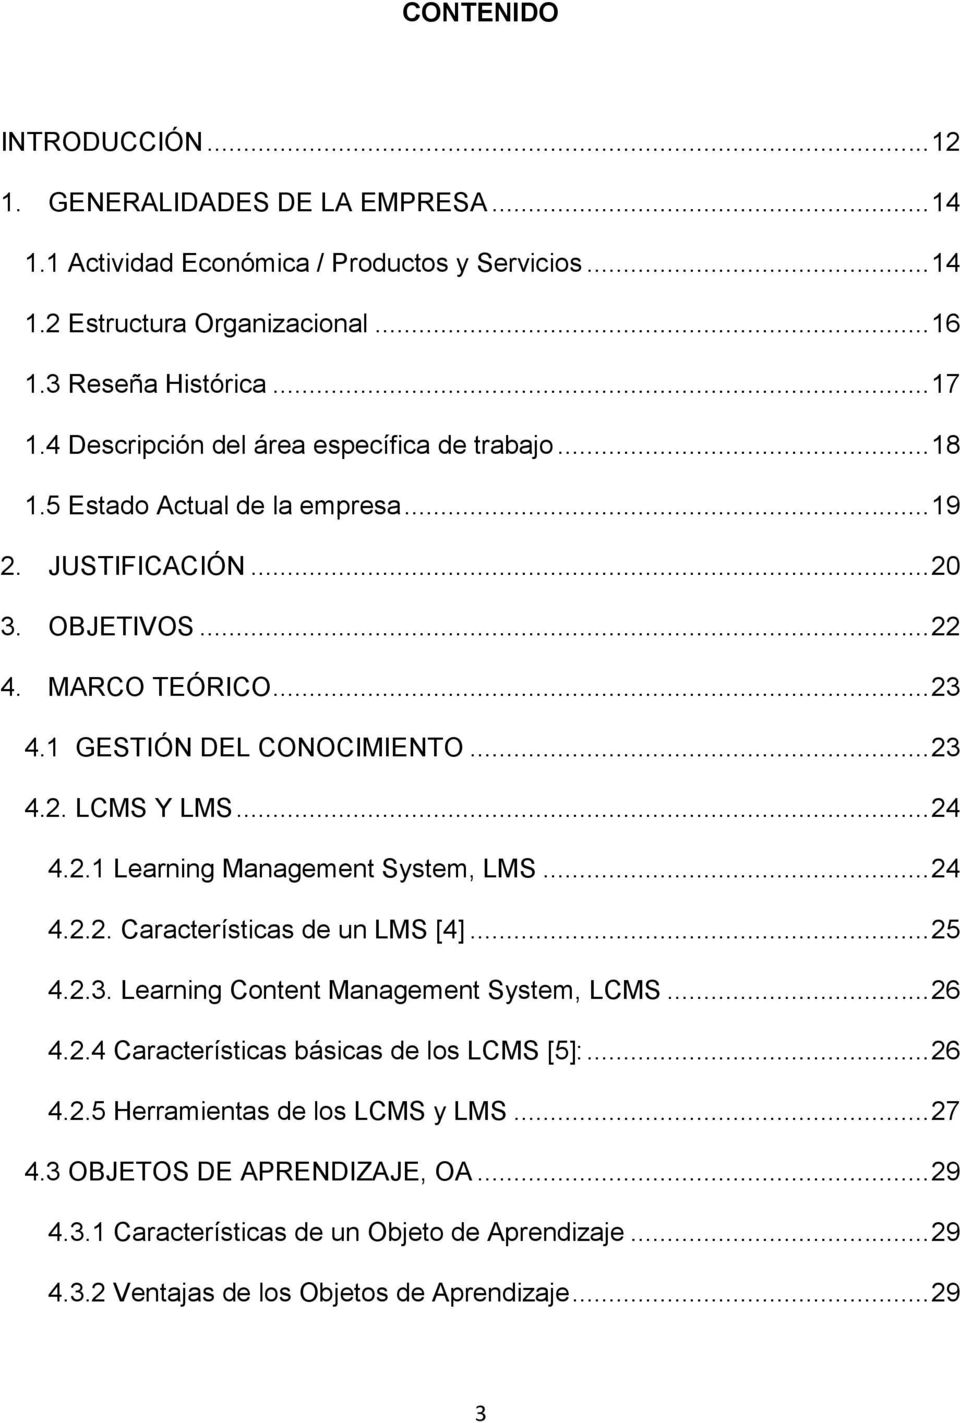 .. 24 4.2.1 Learning Management System, LMS... 24 4.2.2. Características de un LMS [4]... 25 4.2.3. Learning Content Management System, LCMS... 26 4.2.4 Características básicas de los LCMS [5]:.